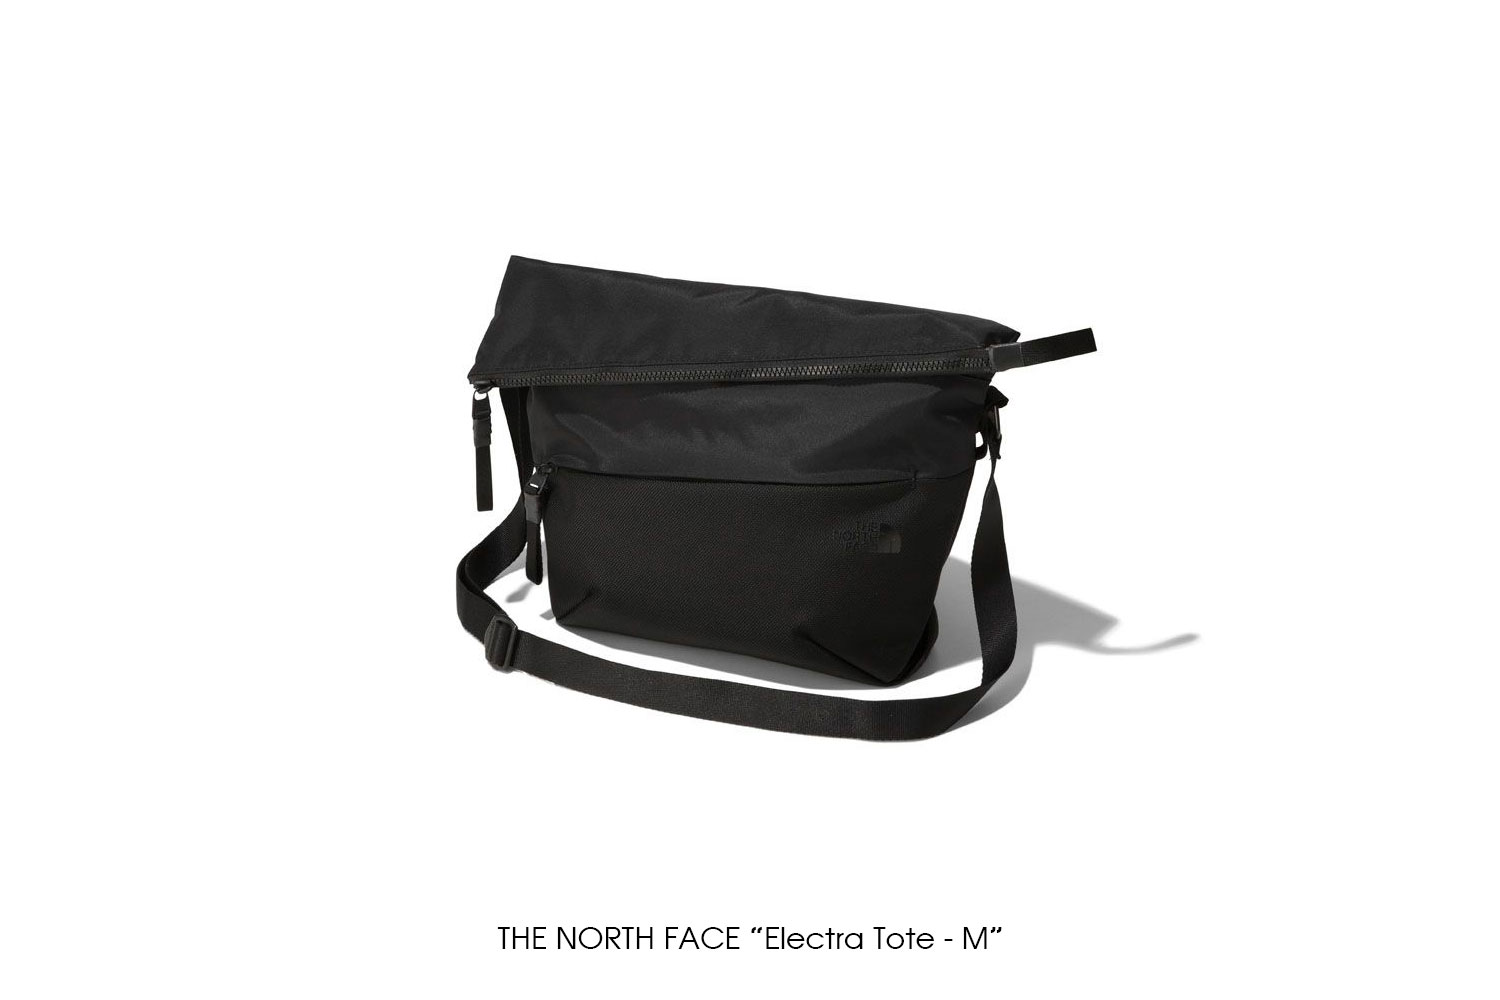 """THE NORTH FACE """"Electra Tote - M"""""""